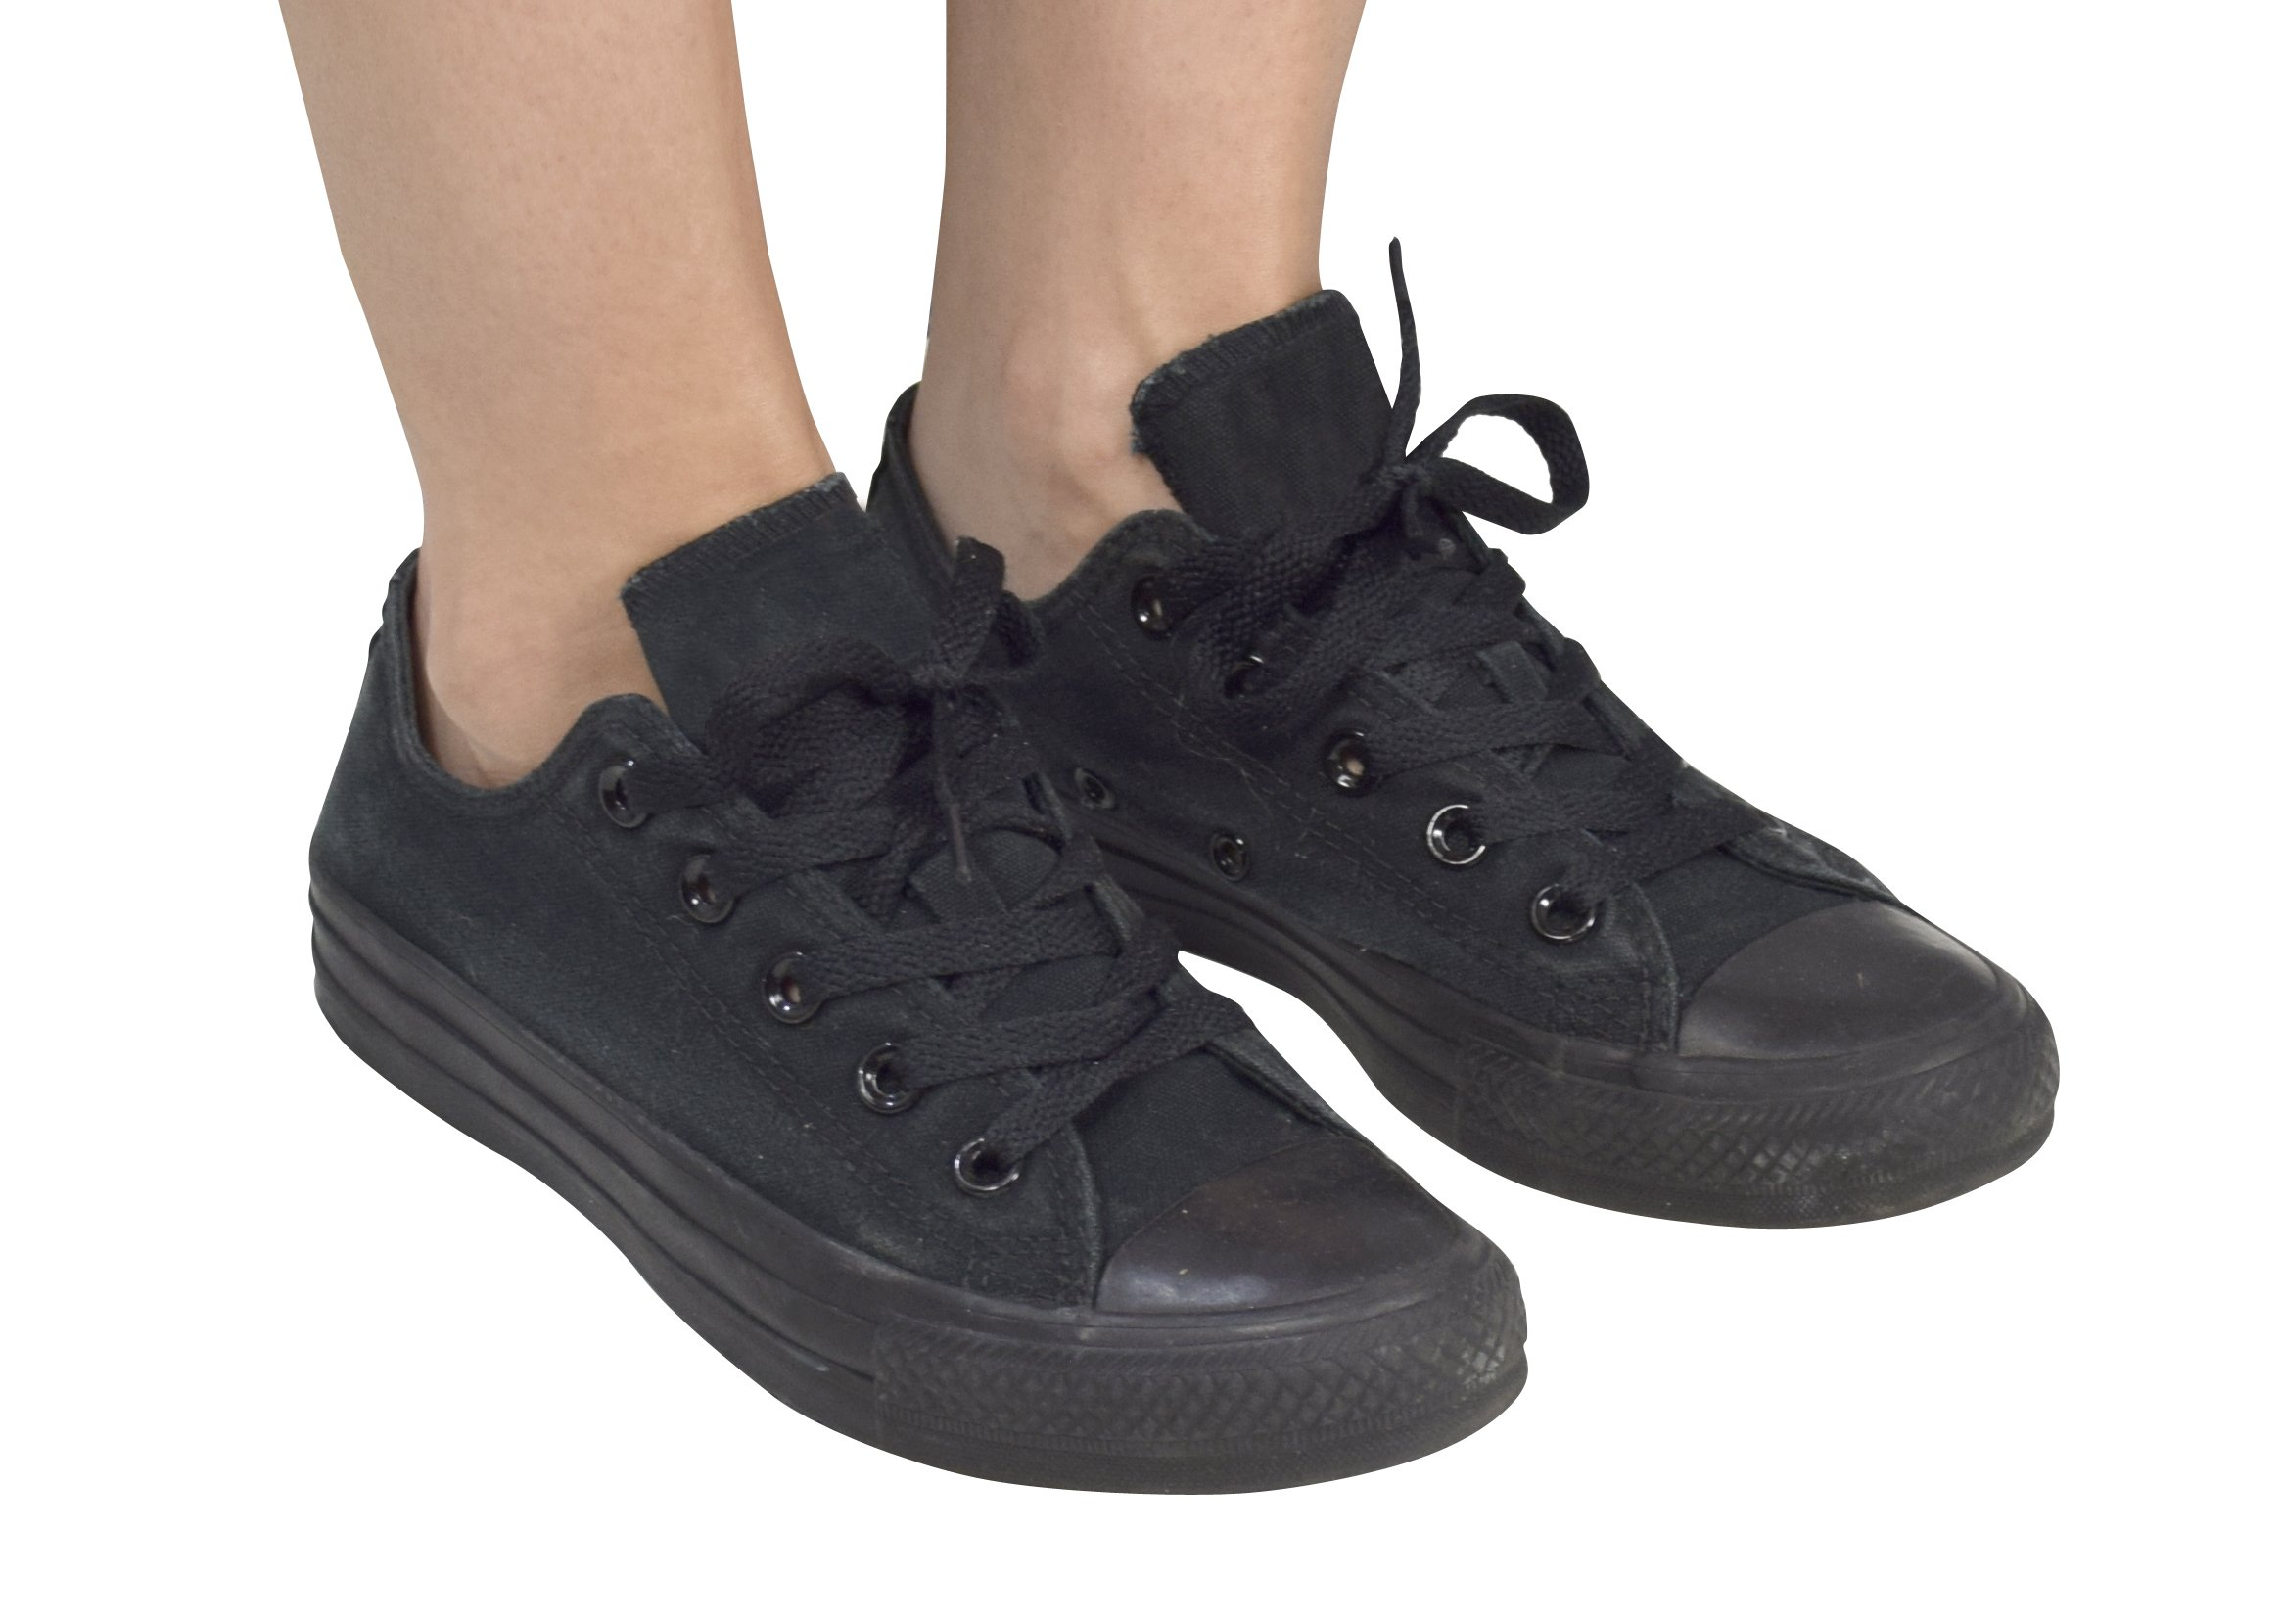 Peach Couture Casual Sneakers Low Top Tennis Shoes (10, Solid Black)